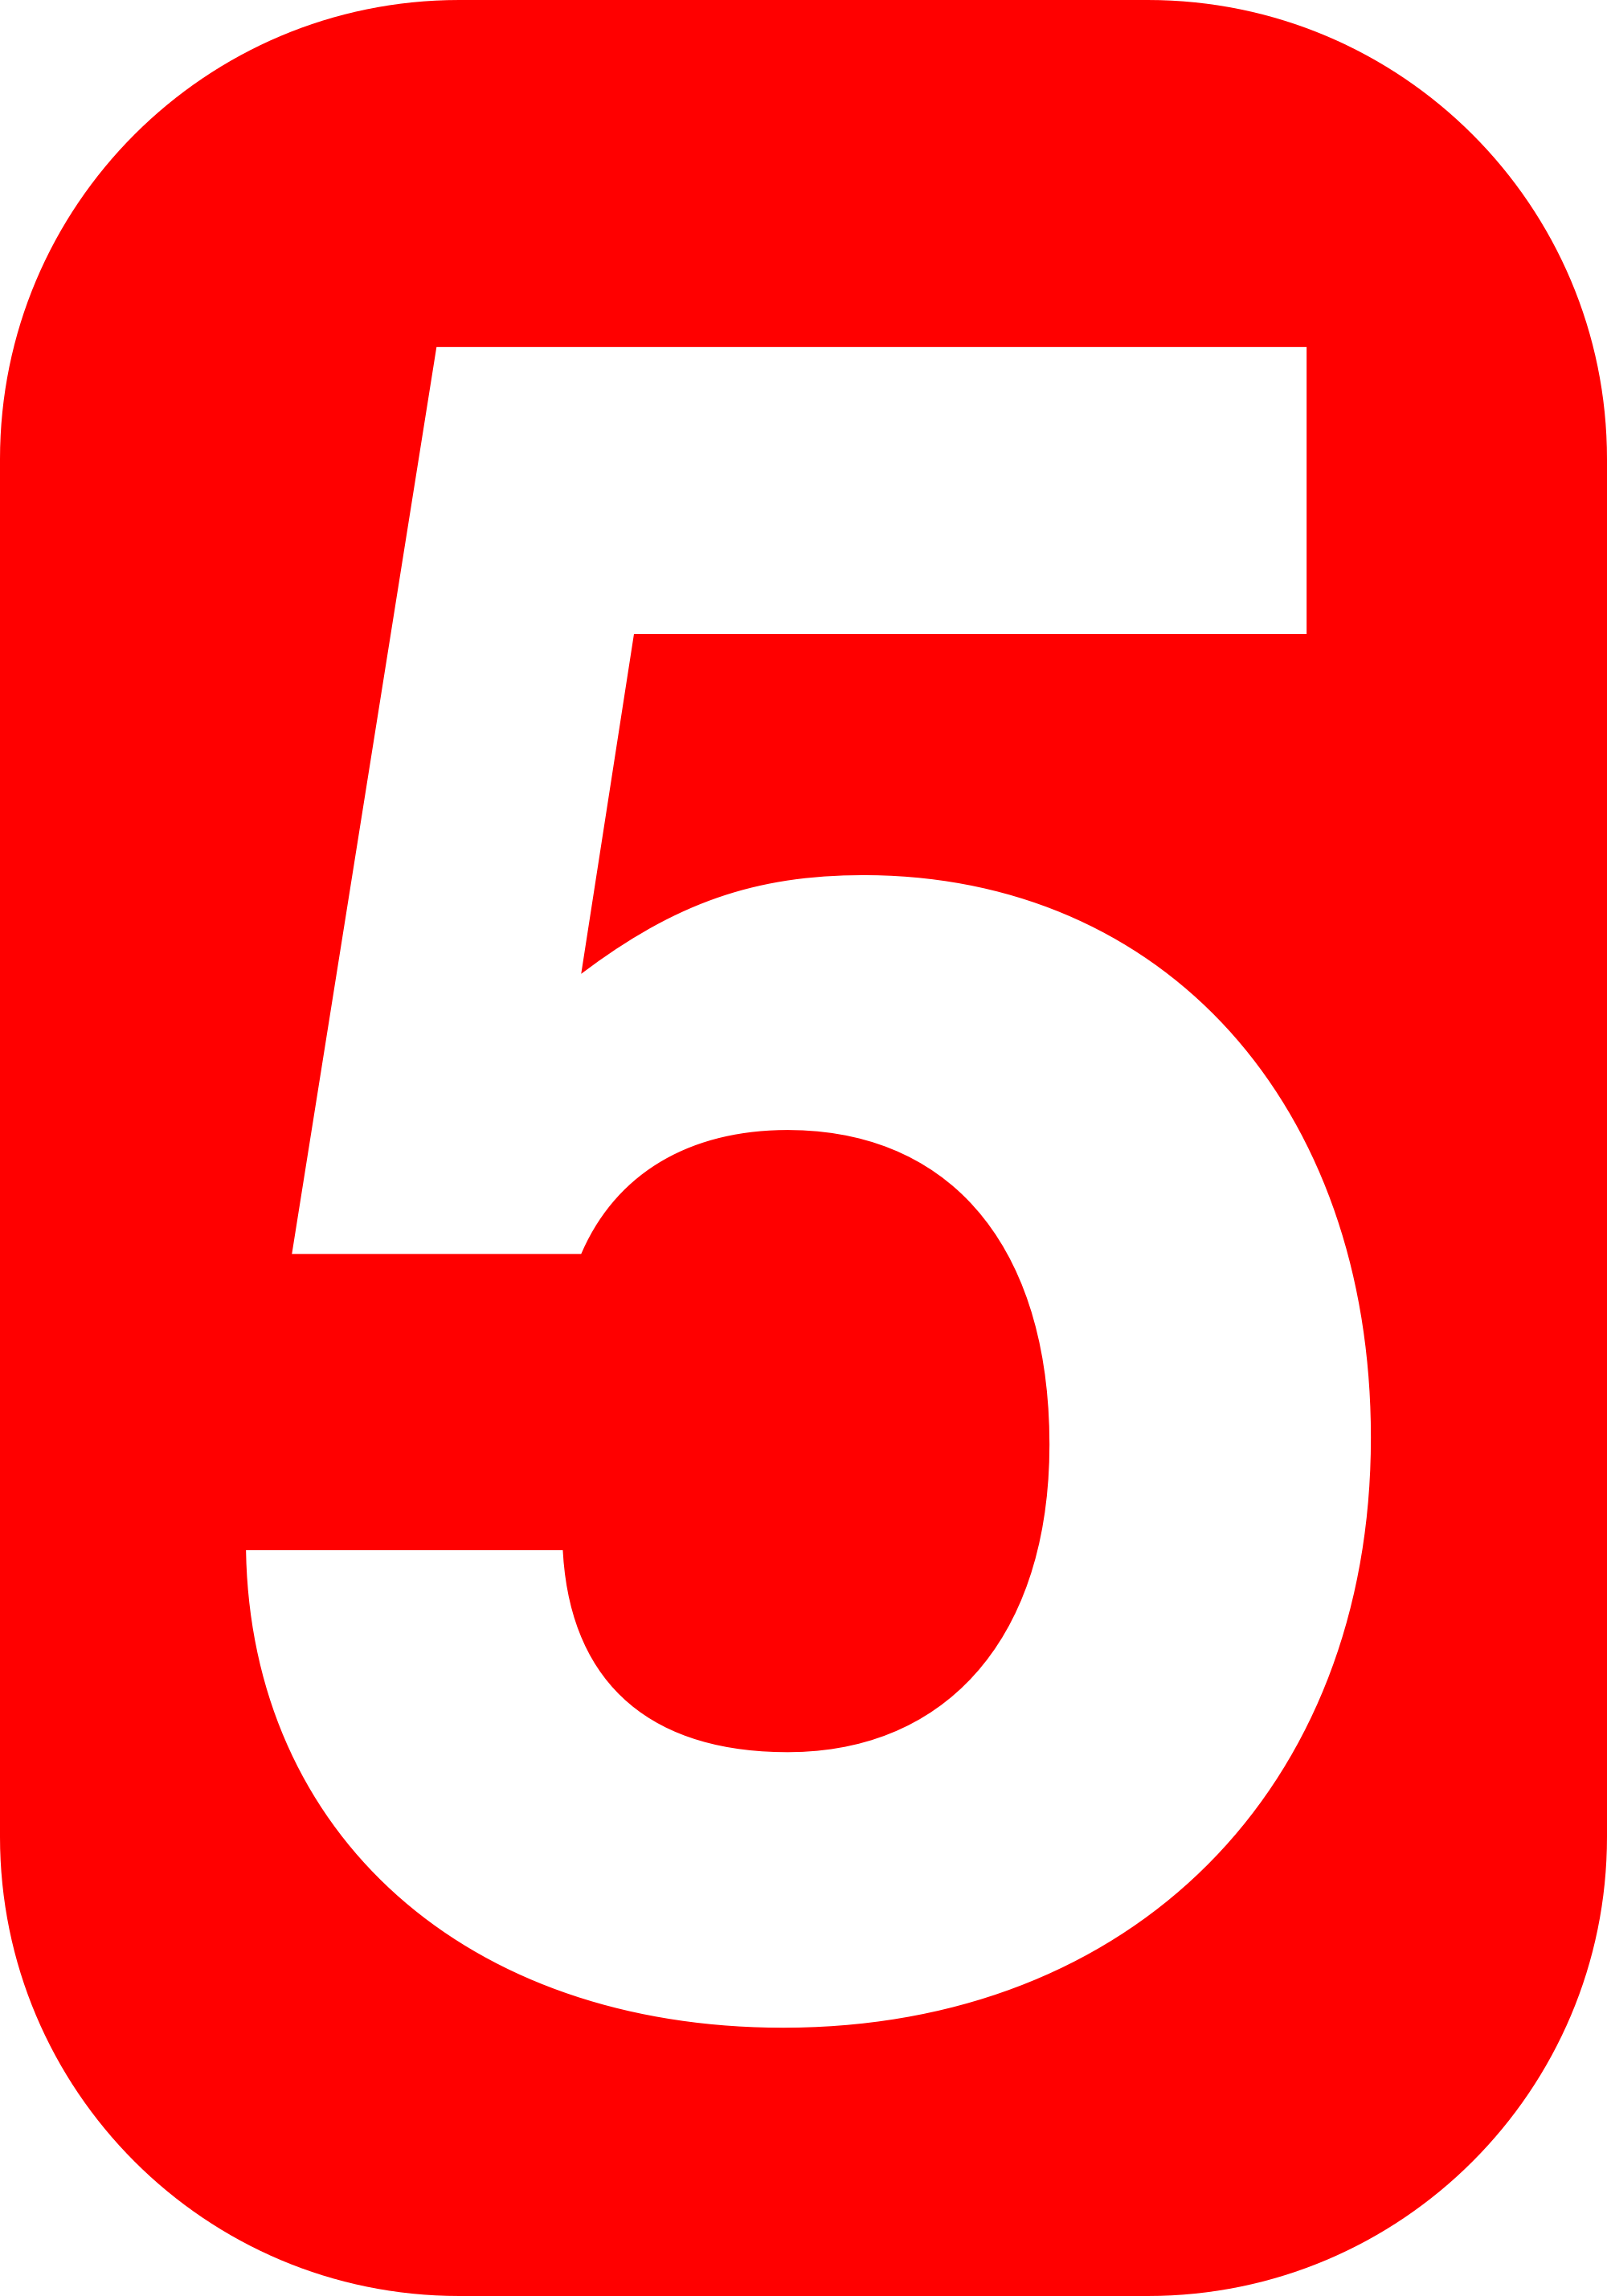 File:5 white, red rounded rectangle.svg.